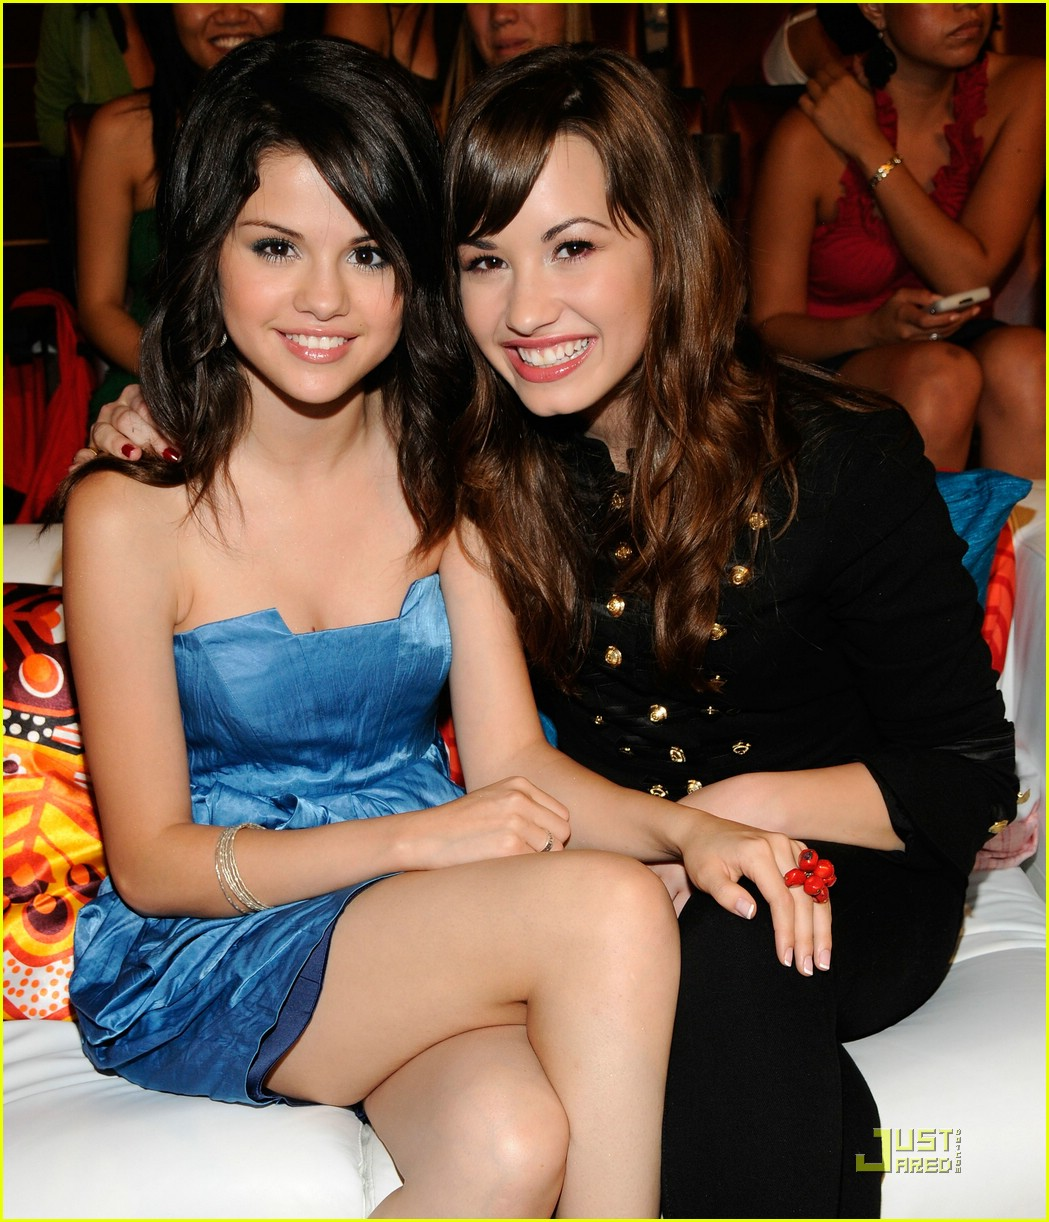 miley cyrus selena gomez teen choice awards 2008 031316071